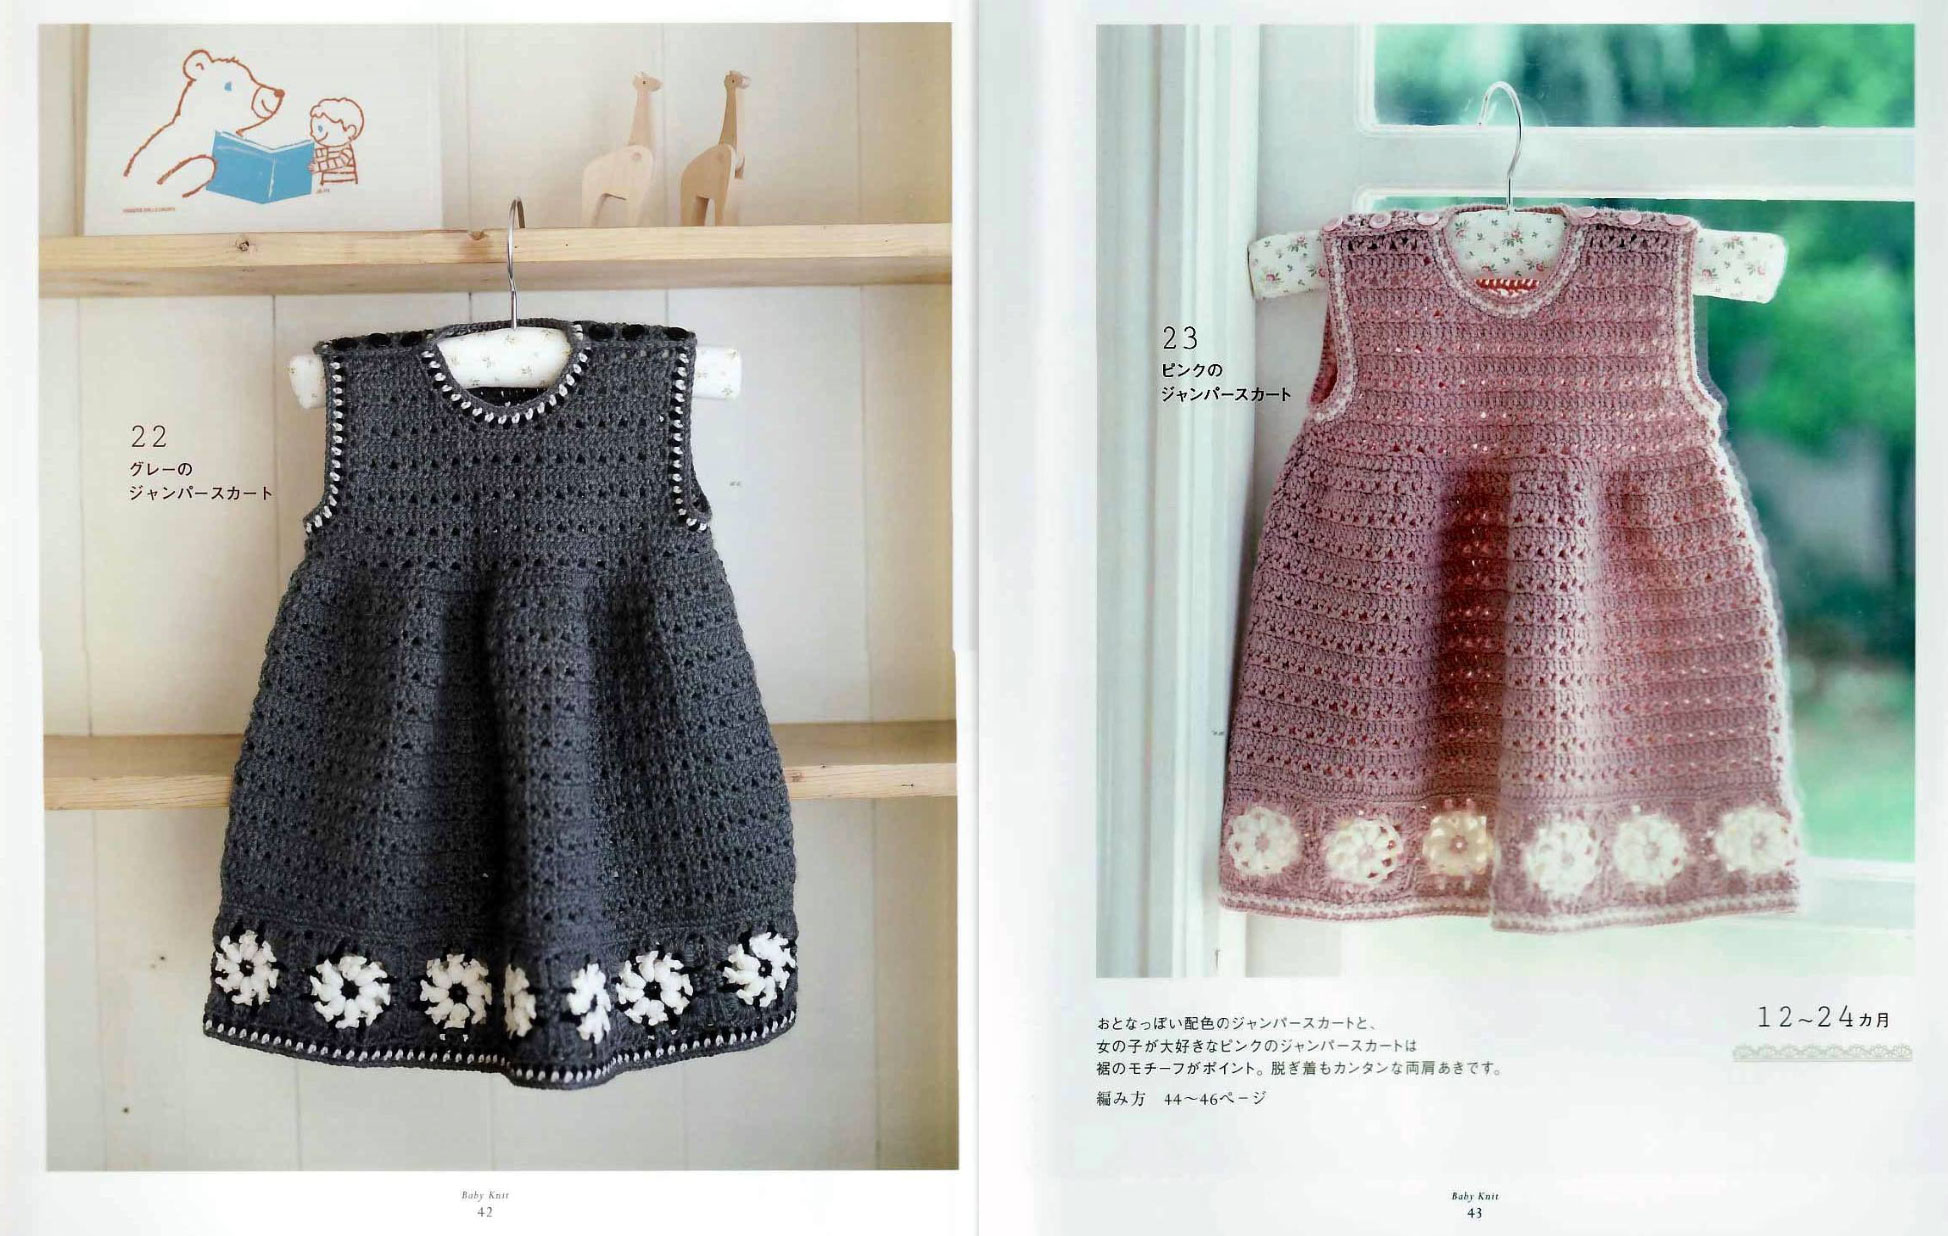 How To Crochet Dress Free Patterns : Cute Japanese Baby Crochet Dress Pattern ? Crochet Kingdom